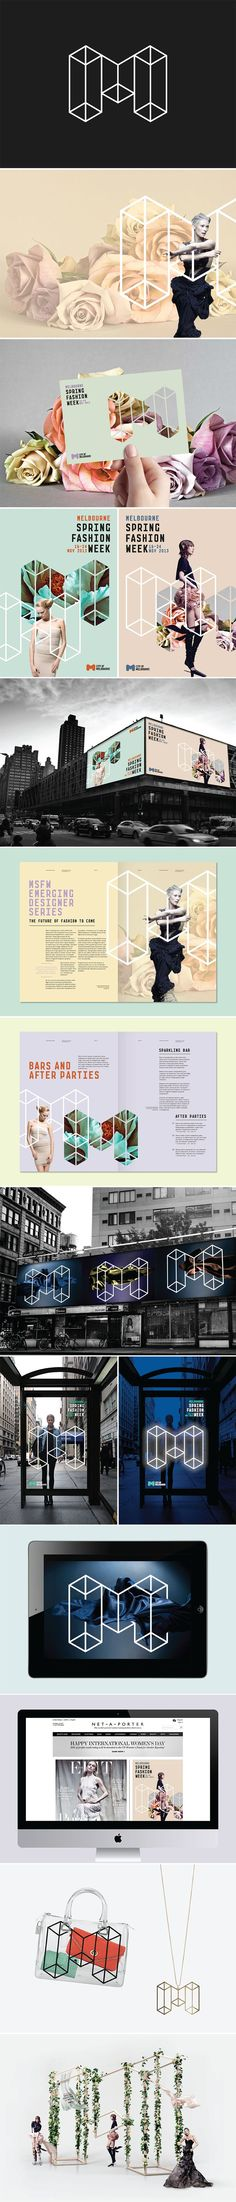 Melbourne Spring Fashion Week branding by Sarita Walsh